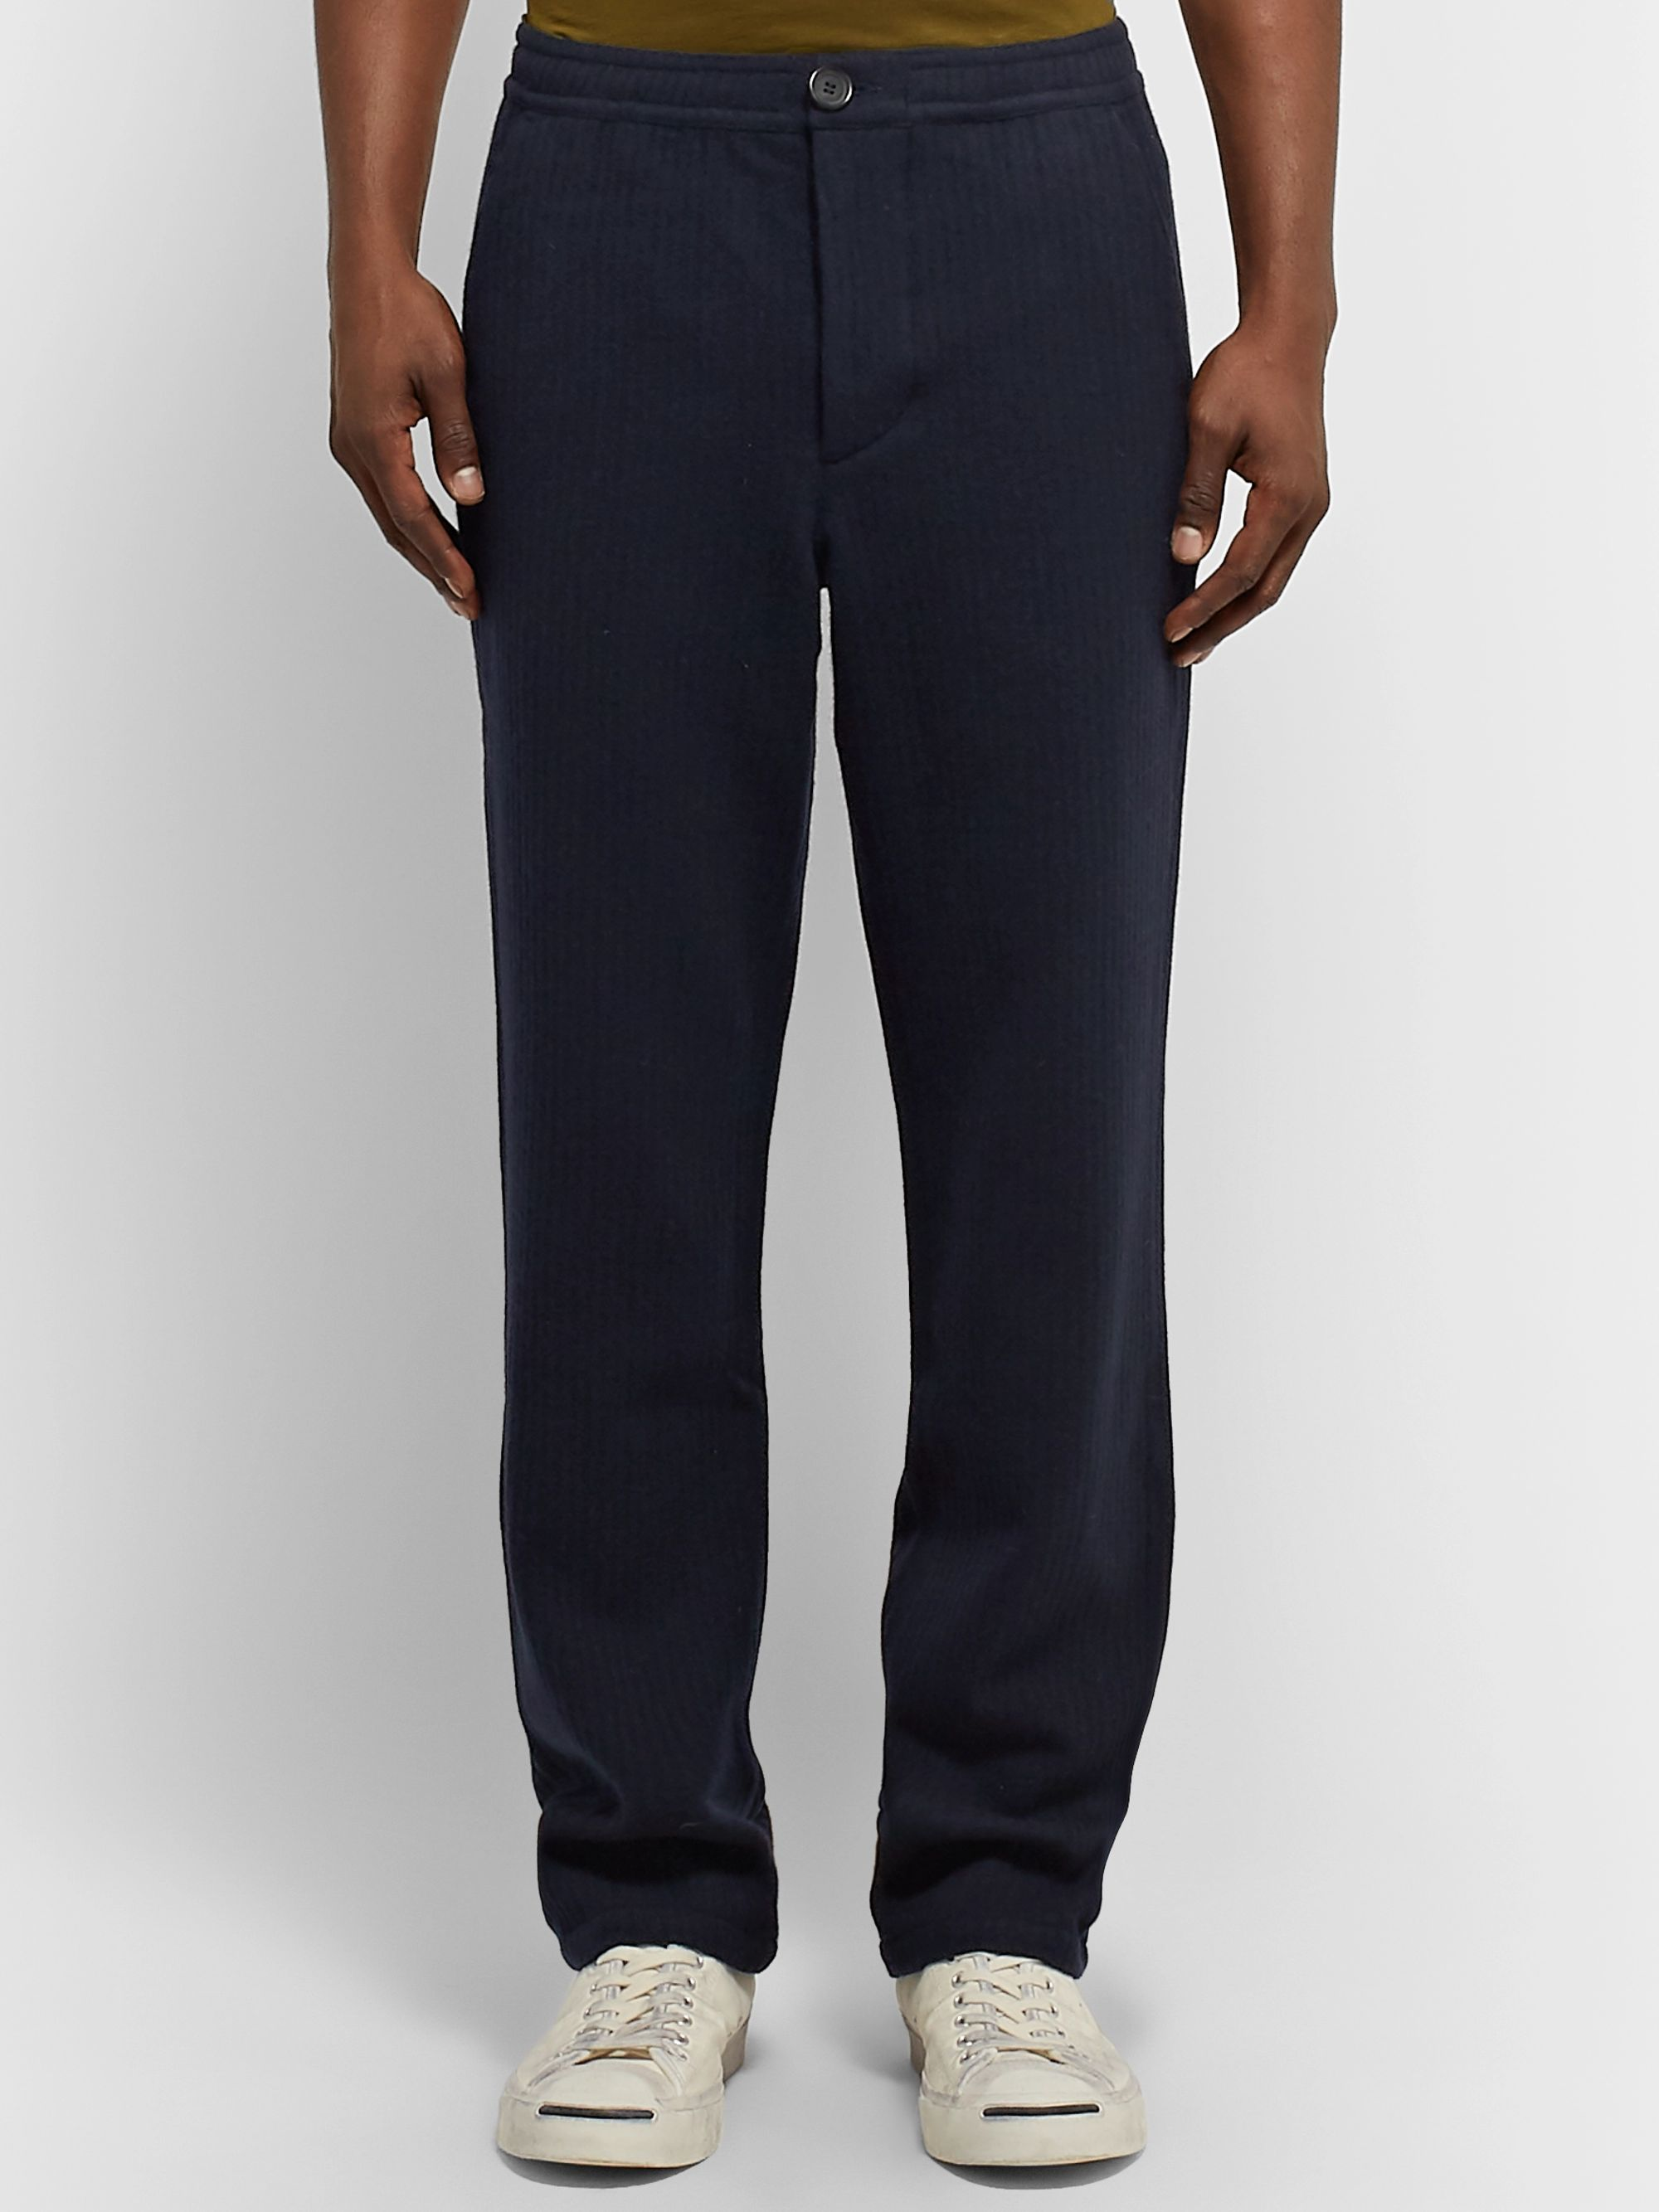 Oliver Spencer Navy Striped Wool Trousers